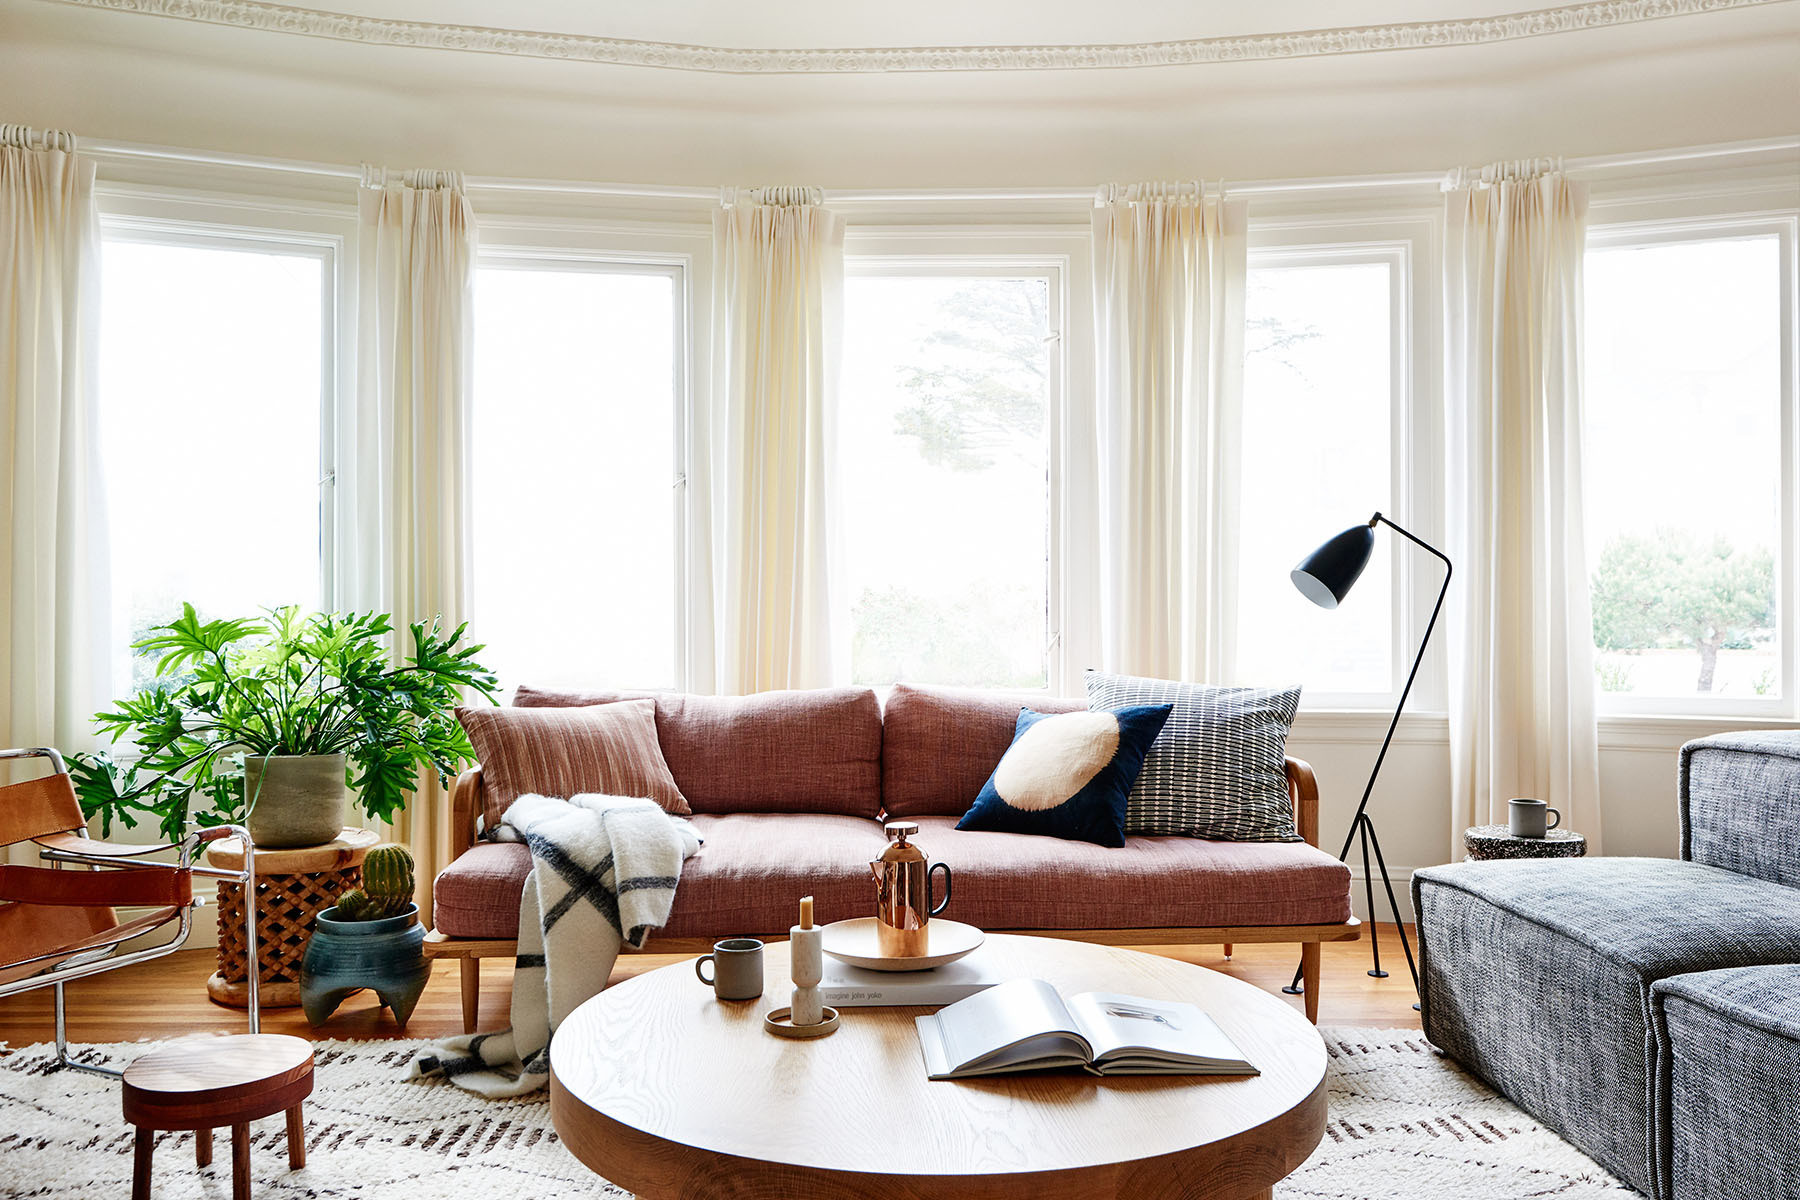 Interior designer Katie Martinez decorates her Outer Richmond home with eclectic, mid-century finds and sentimental family heirlooms. Chop Wood Co. Custom Sofa | Article Armchairs | Vintage Armchairs | Erica Tanov, Amber Interiors, Aesthetic Union Pillows | Parachute Throw | Armadillo Rug | Anthropologie Side Table | Nickey Kehoe Coffee Table | Gubi Floor Lamp | Vintage Planter | Max Lamb Stool | General Store Stool | Tom Dixon French Press | Blackcreek Mercantile & Trading Co. Bowl.